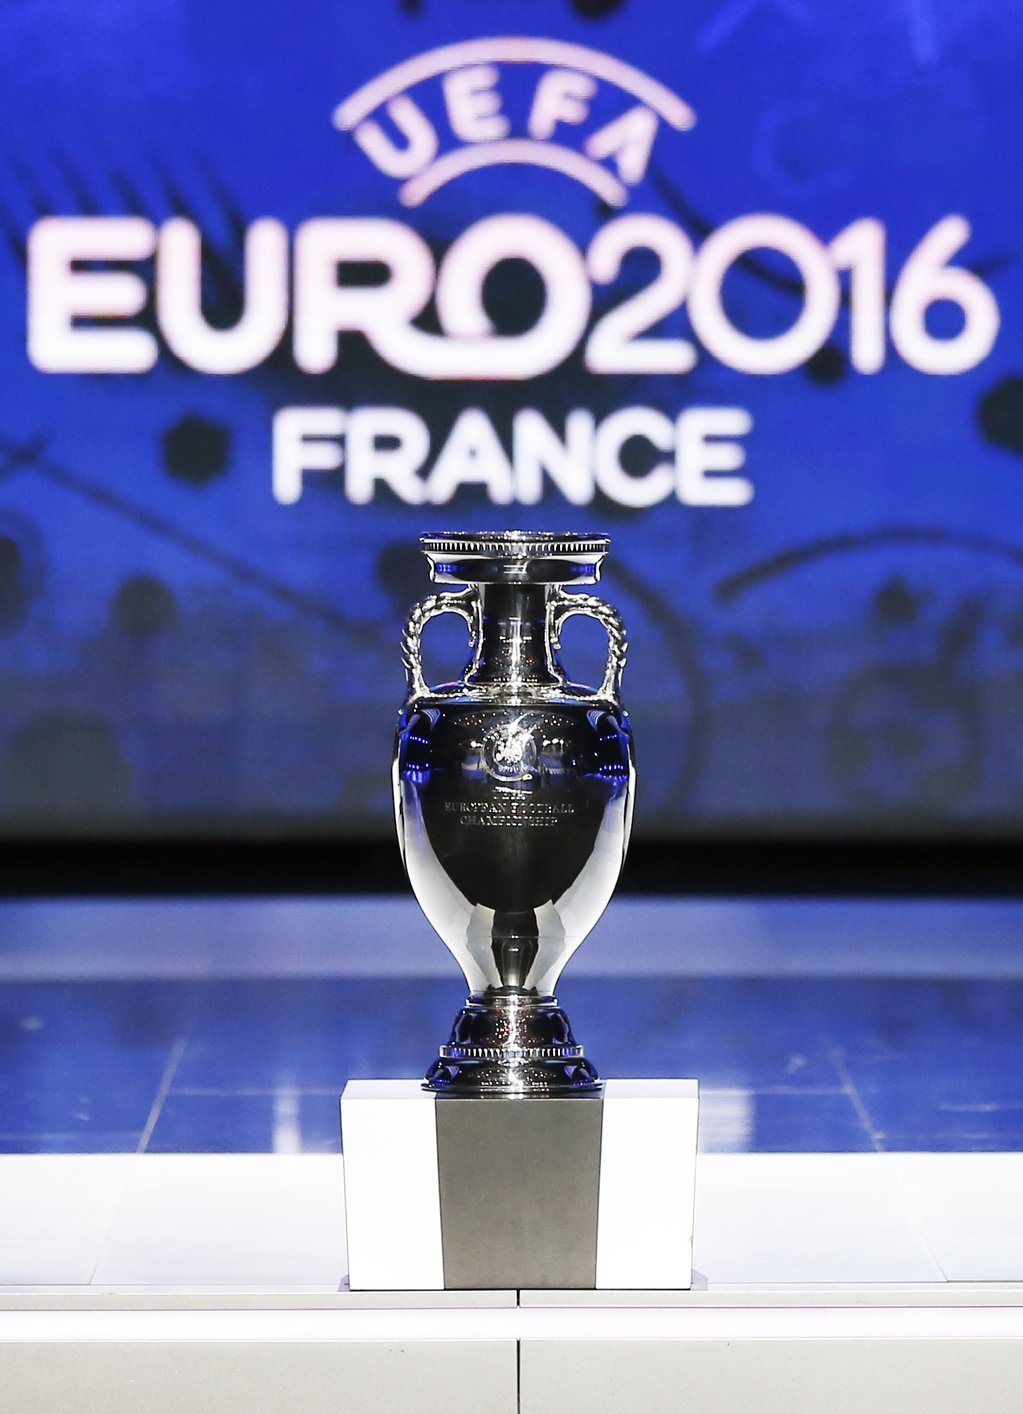 Live euro 2016 tirage au sort r sultat - Calendrier coupe d europe 2016 ...